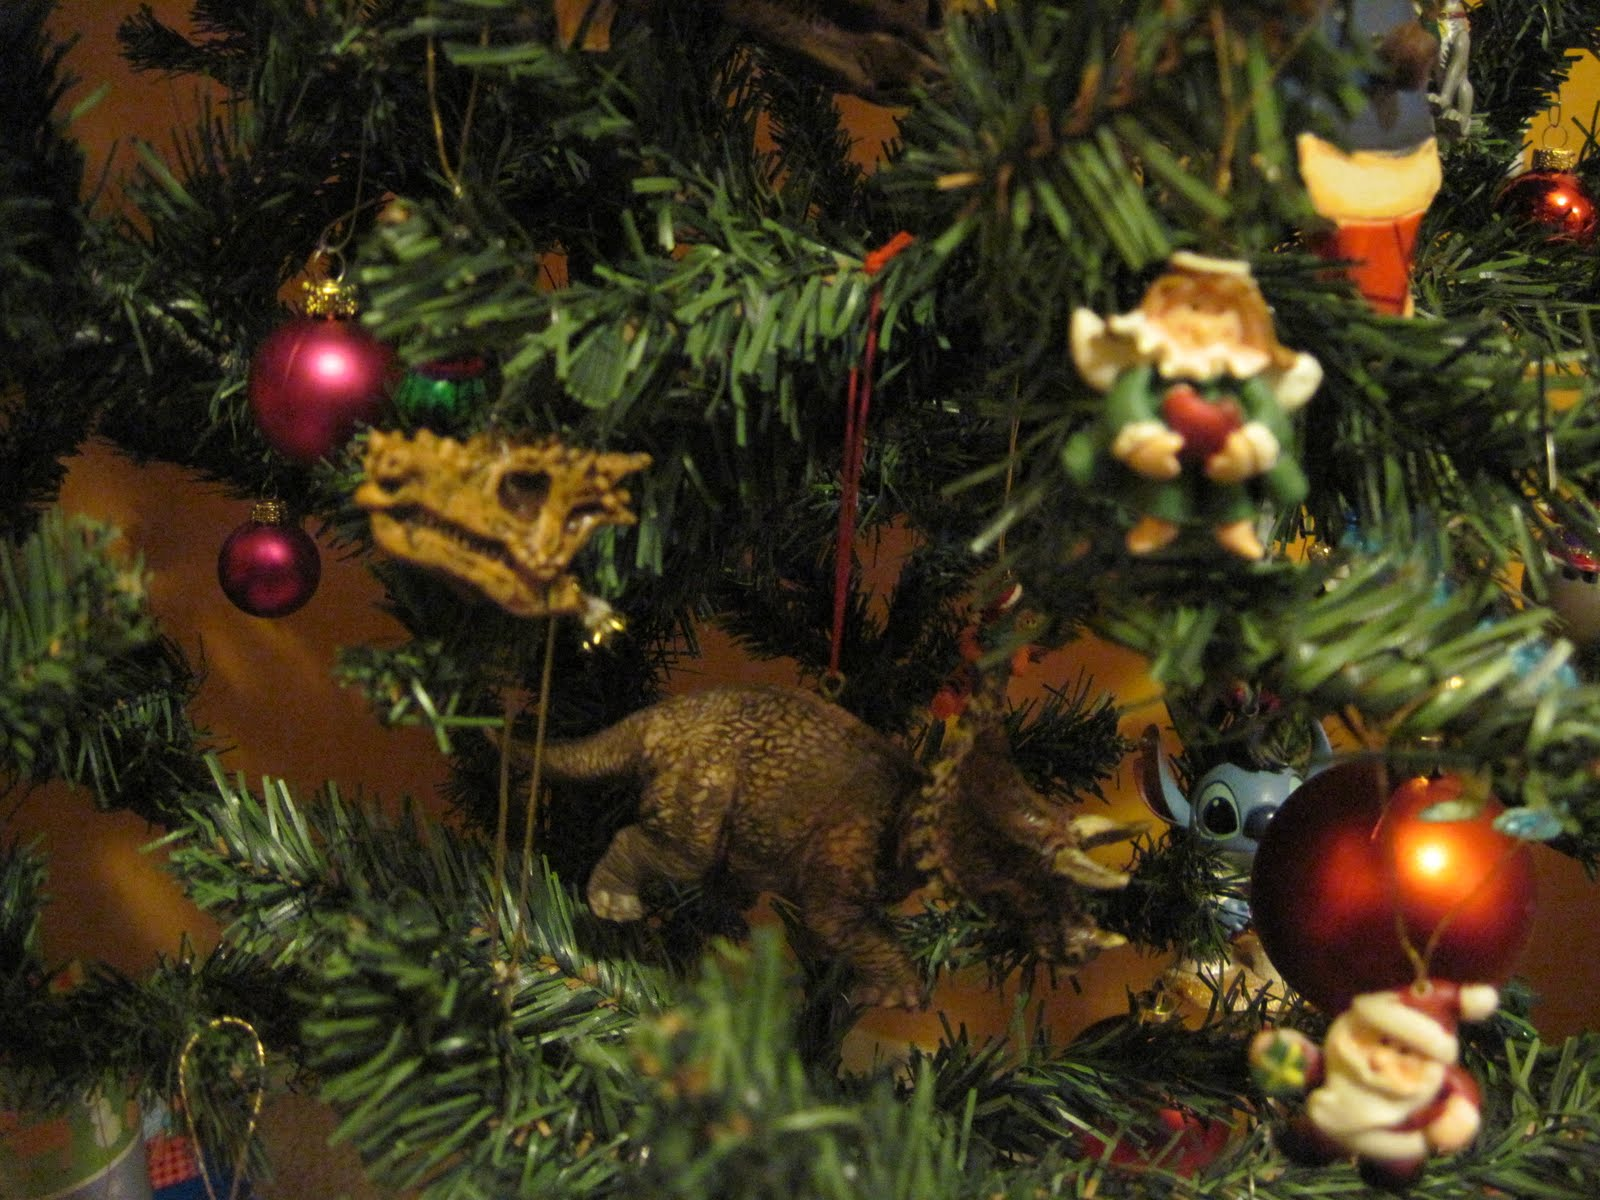 Dinosaur christmas ornaments - Why It S A Tree Composed Of 80 Small Plastic Dinosaur Ornaments How Lovely The Remaining Breakdown Is 10 Hilarious Cellphone Charms Ironic Because